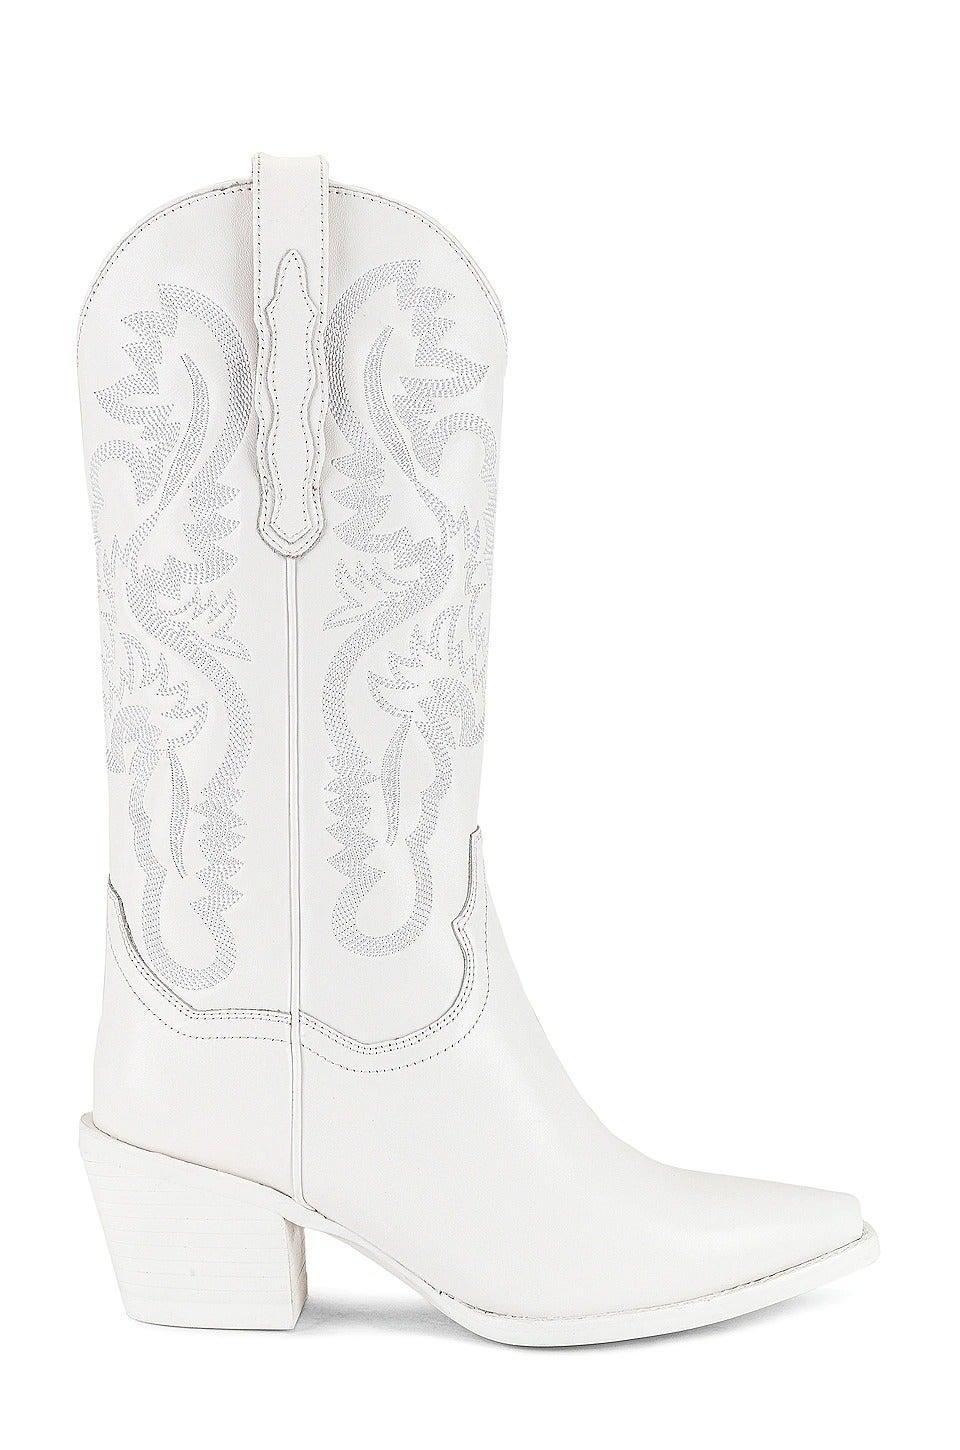 """<br><br><strong>Jeffrey Campbell</strong> Dagget Boot, $, available at <a href=""""https://www.revolve.com/jeffrey-campbell-dagget-boot-in-white-combo/dp/JCAM-WZ1160/?d=Womens&sectionURL=%2Fshoes-boots%2Fbr%2F59da4f%2F%3F%26s%3Dc%26c%3DShoes%26sc%3DBoots%26searchsynonym%3Dcowboy%2Bboots&code=JCAM-WZ1160"""" rel=""""nofollow noopener"""" target=""""_blank"""" data-ylk=""""slk:Revolve"""" class=""""link rapid-noclick-resp"""">Revolve</a>"""